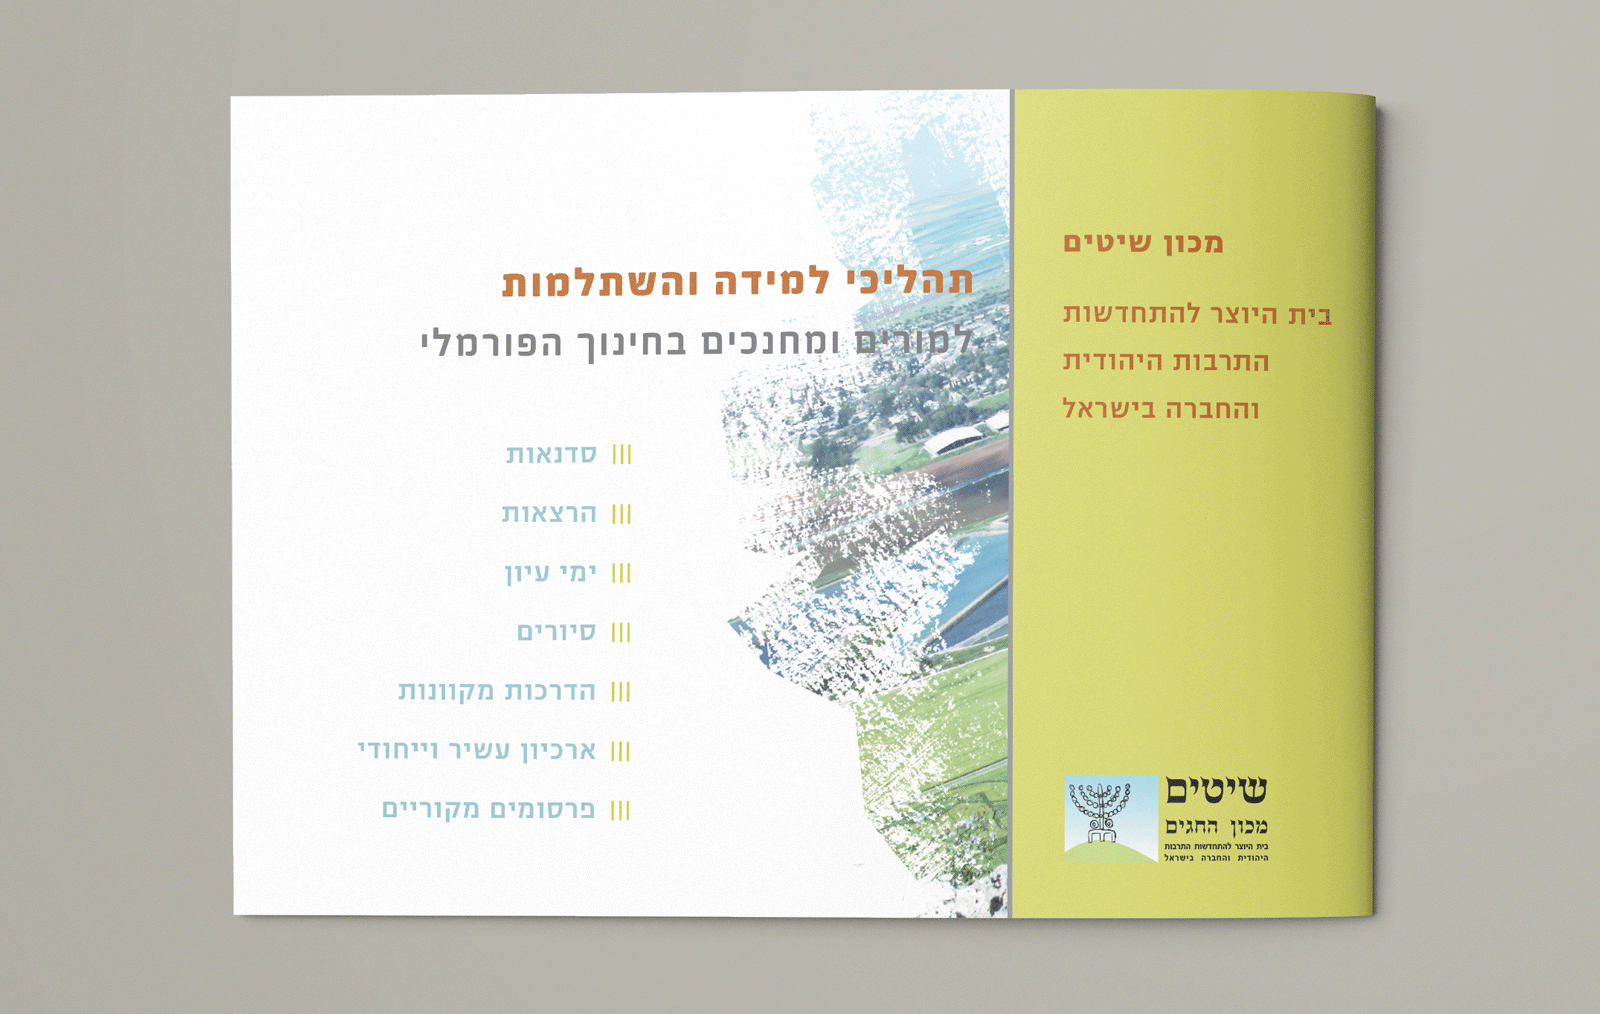 http://bigeyes.co.il/wp-content/uploads/2019/07/shitim-brochure-1.png